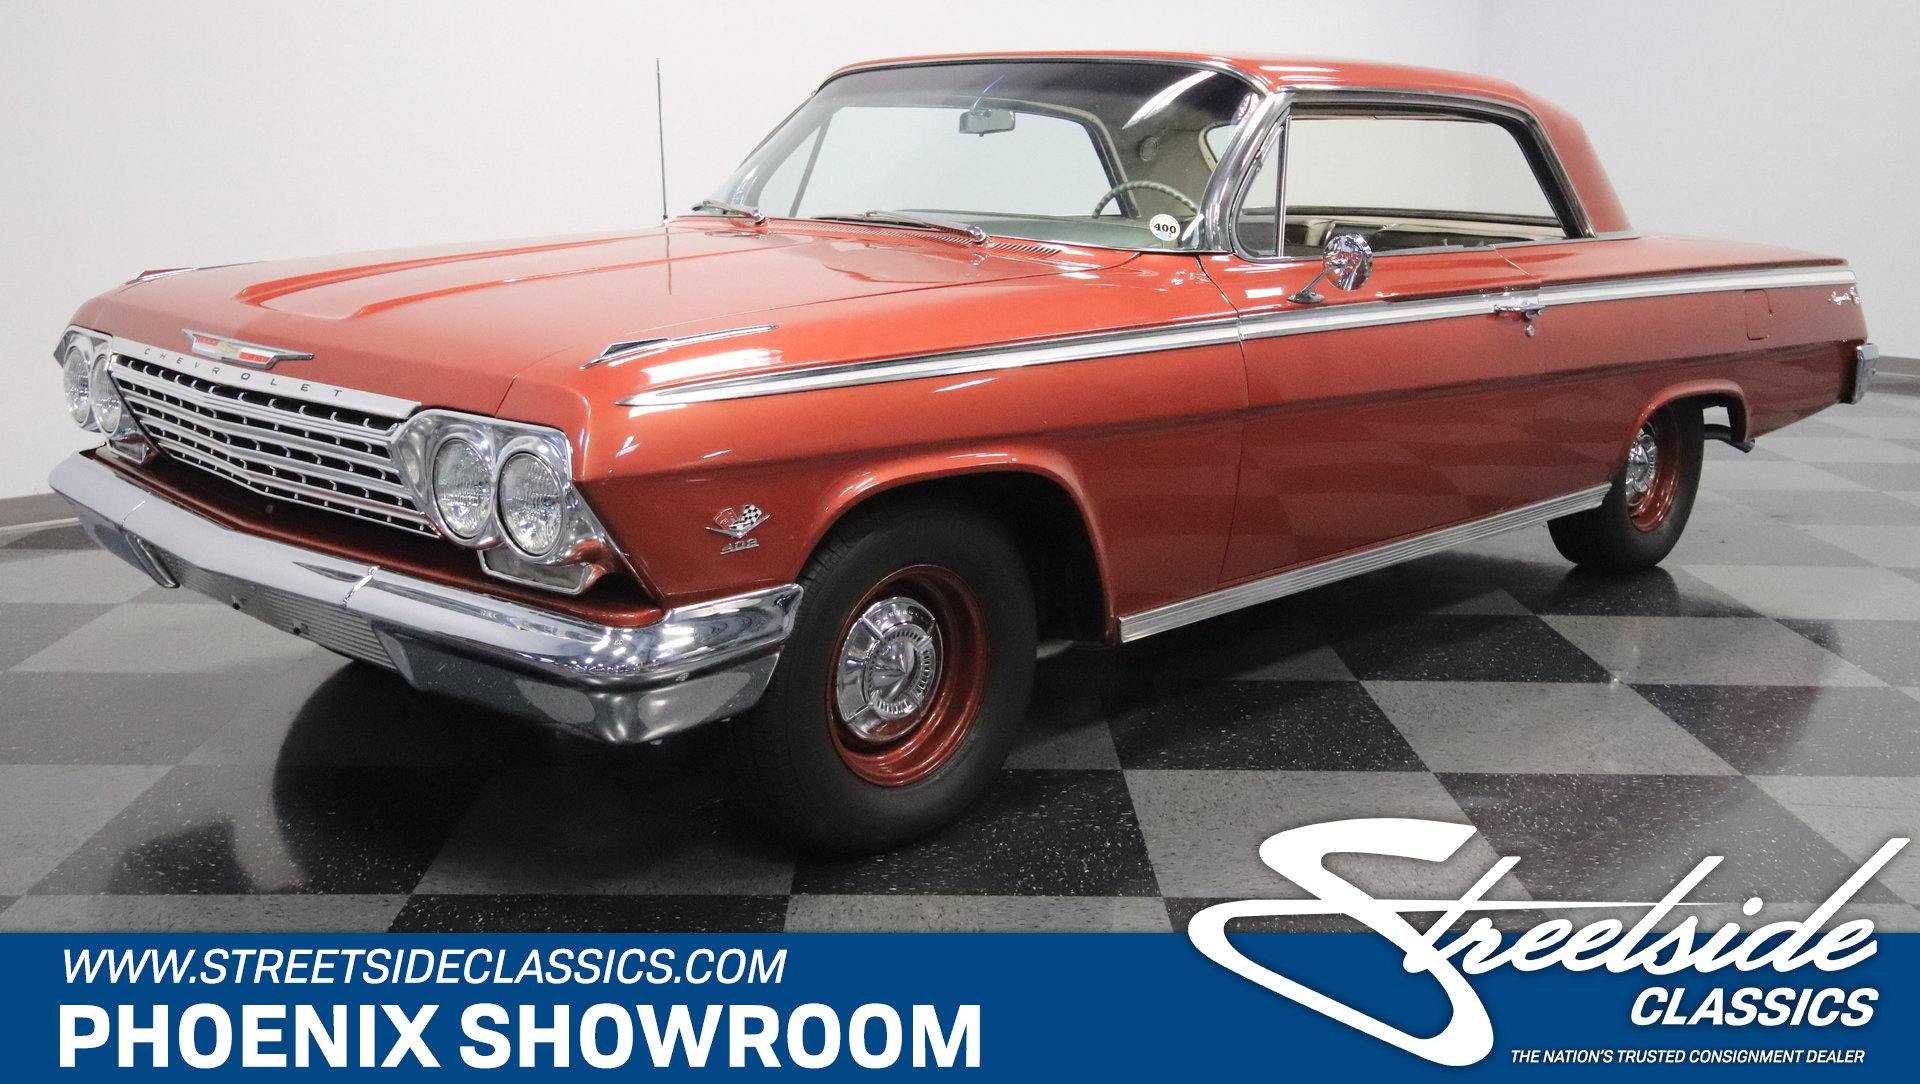 For Sale: 1962 Chevrolet Impala. Spincar view. Play Video